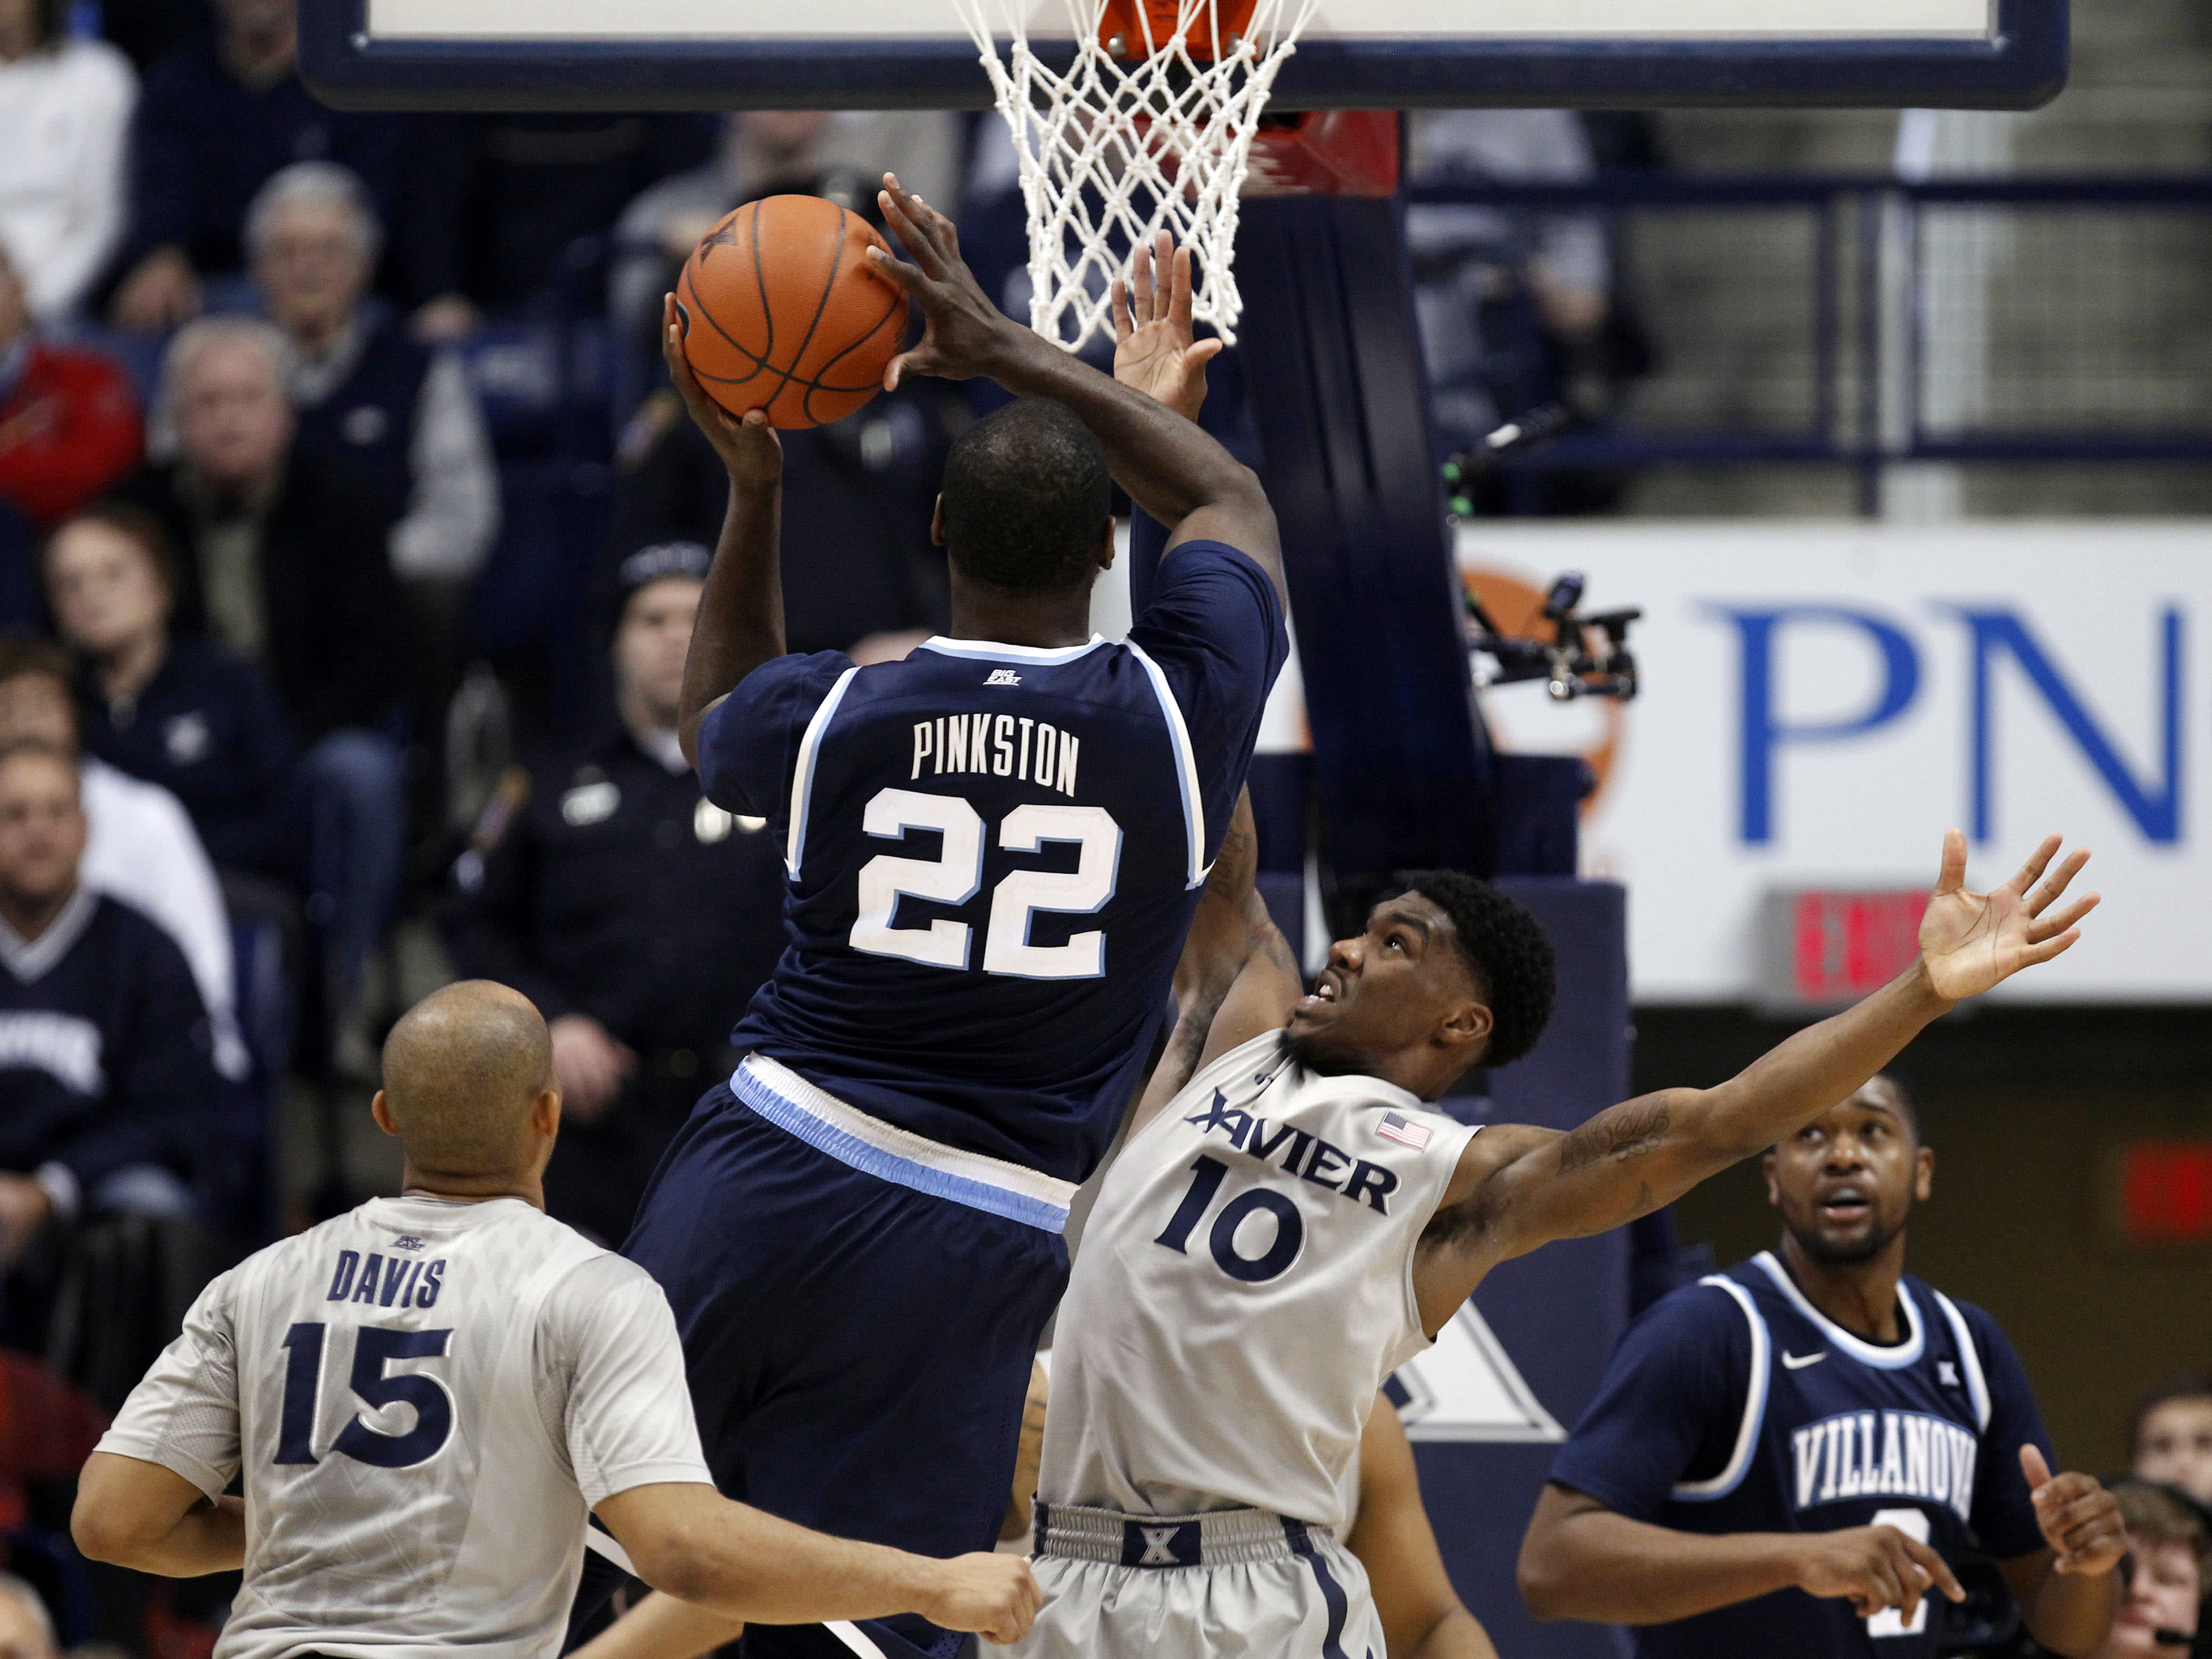 Villanova wins Big East and bolsters case for No. 1 seed against Xavier